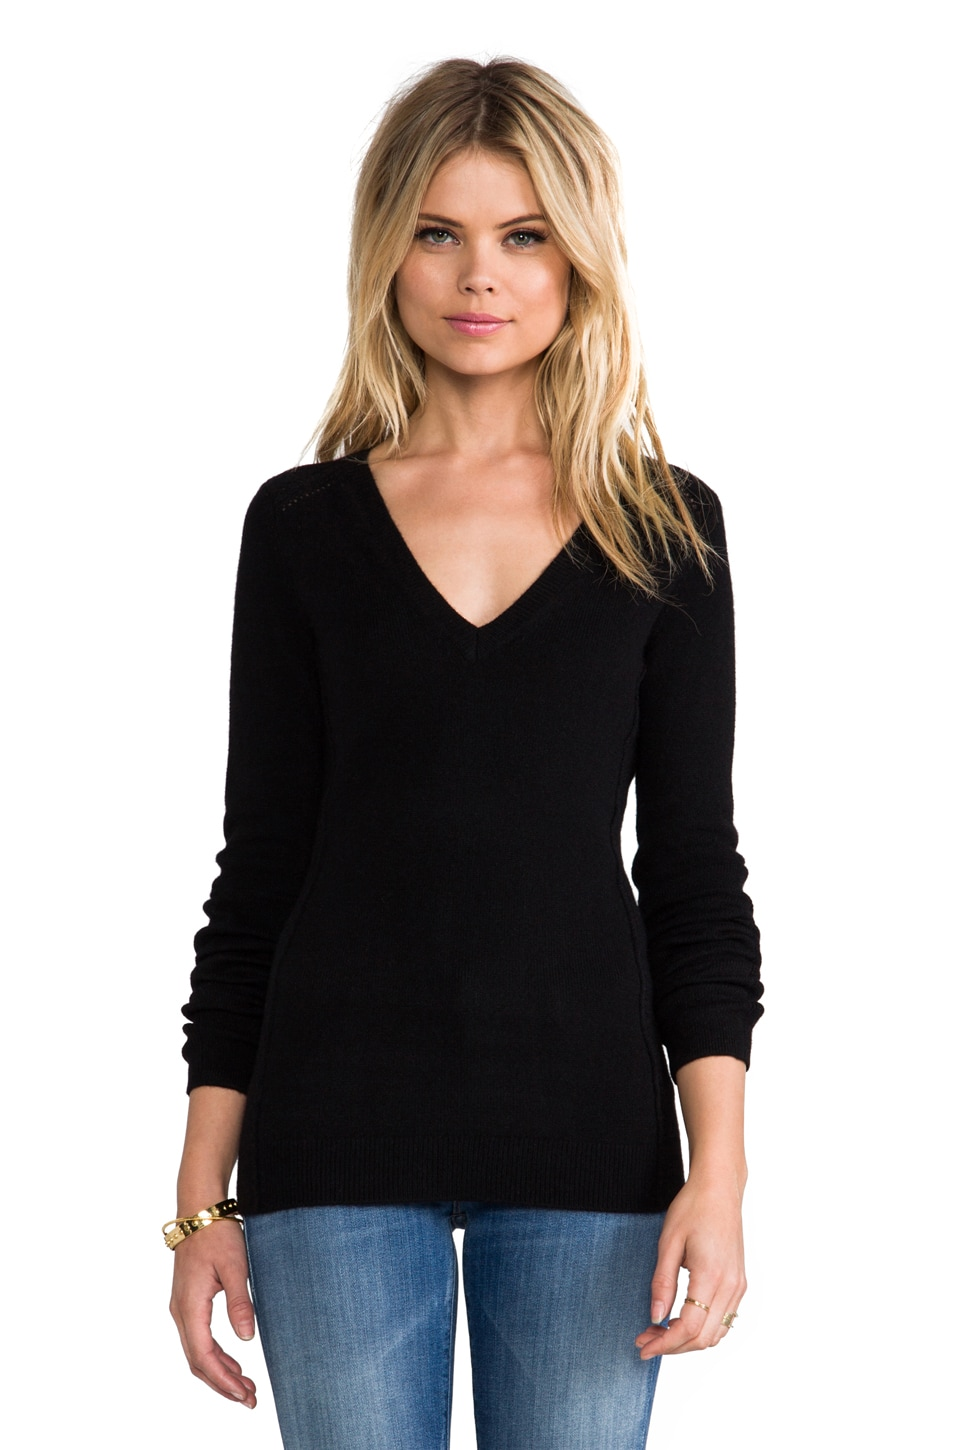 Inhabit Cashmere Stretch V-Neck Sweater in Black